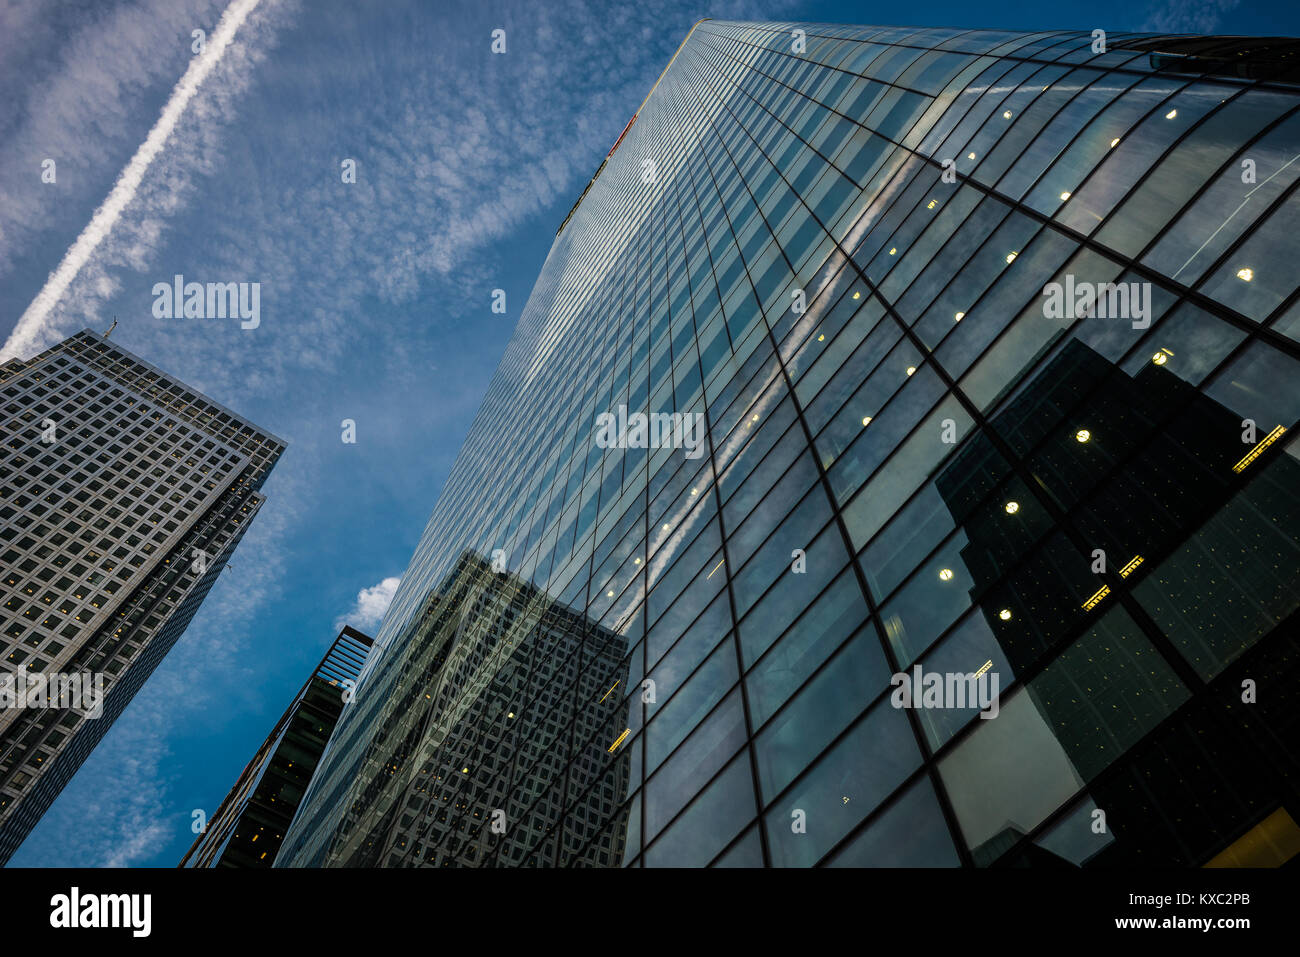 Office buildings in Canary Wharf, a major business district in London, United Kingdom - Stock Image